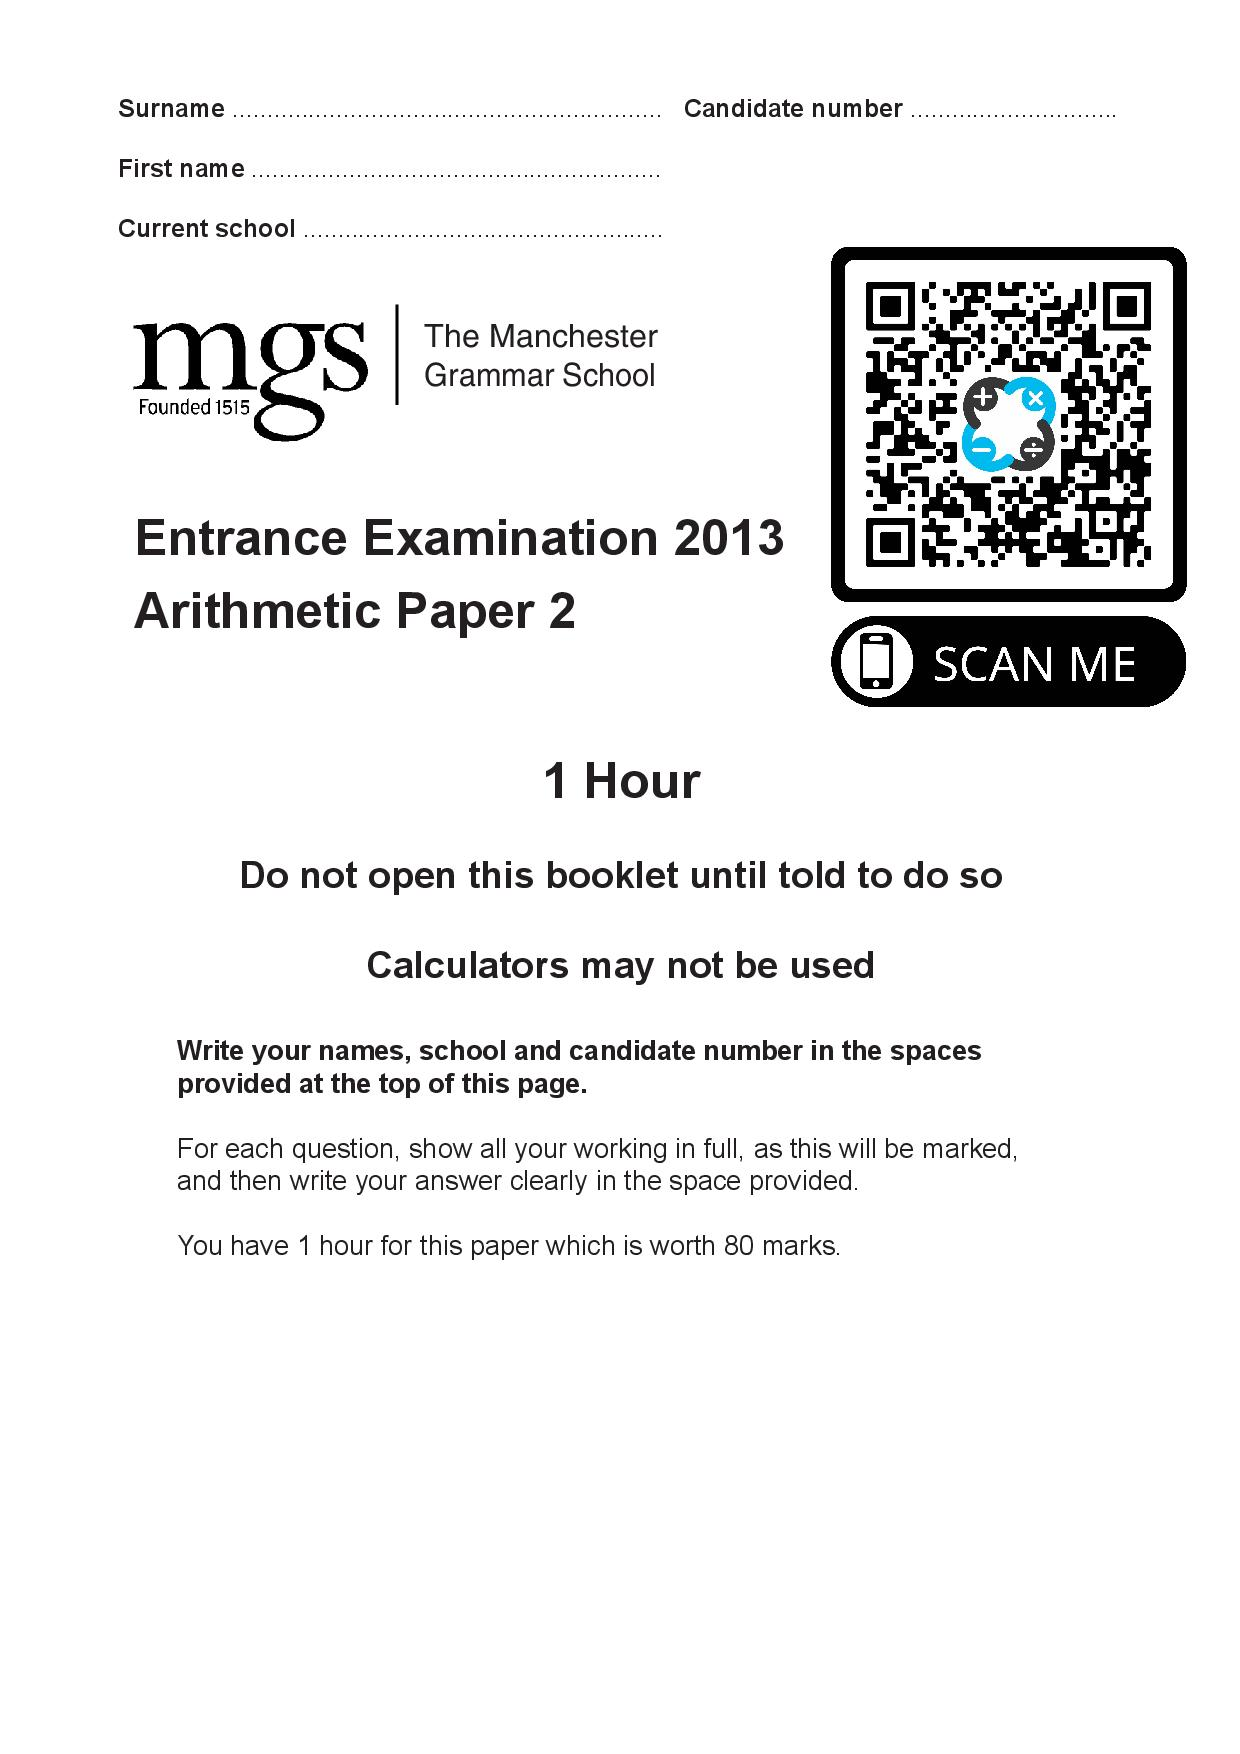 The Manchester Grammar School Entrance Examination 2013 Arithmetic Paper 2 Questions Paper page 001